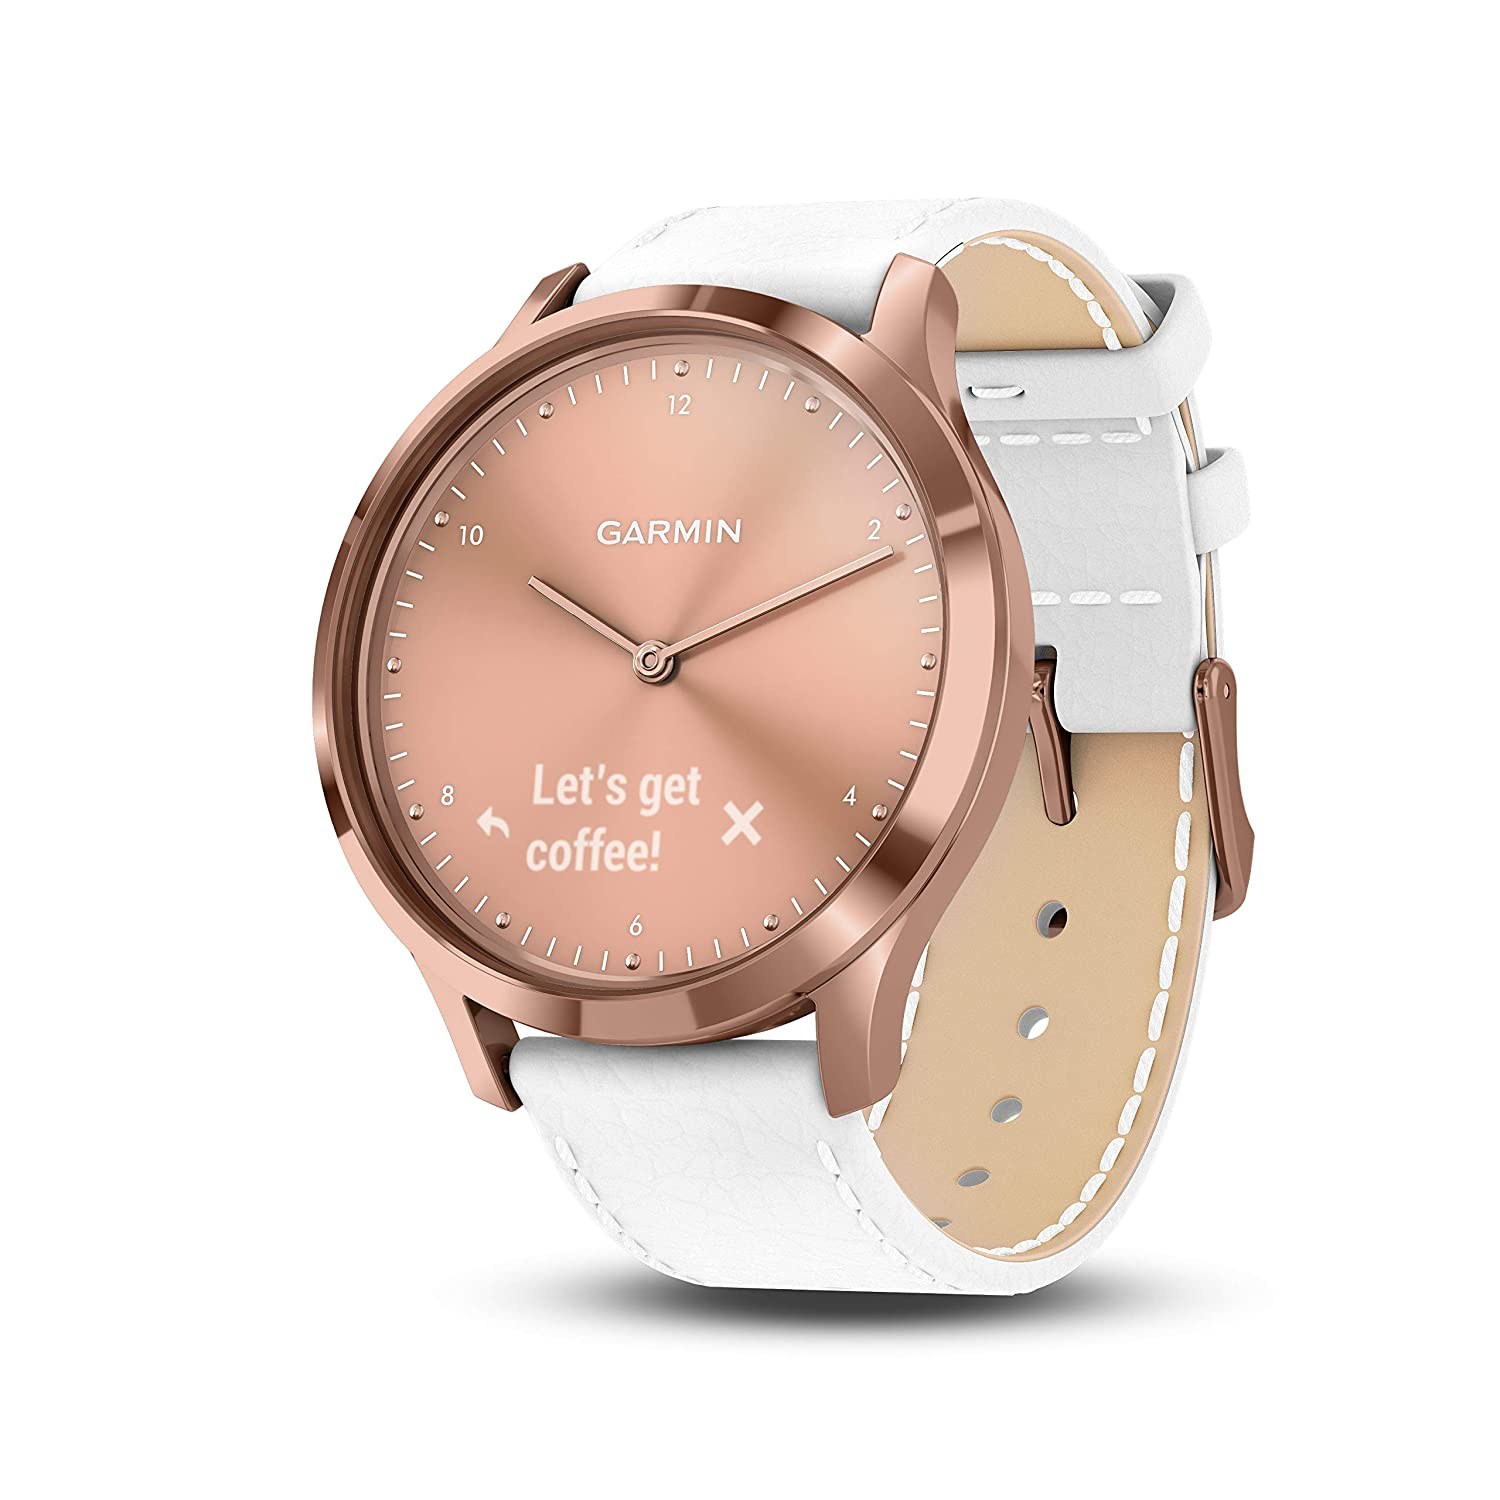 GARMIN VIVO -VIVOMOVE HR SPORT ROSE GOLD WHITE WATCH-Vivomove HR Sport Rose Gold/White